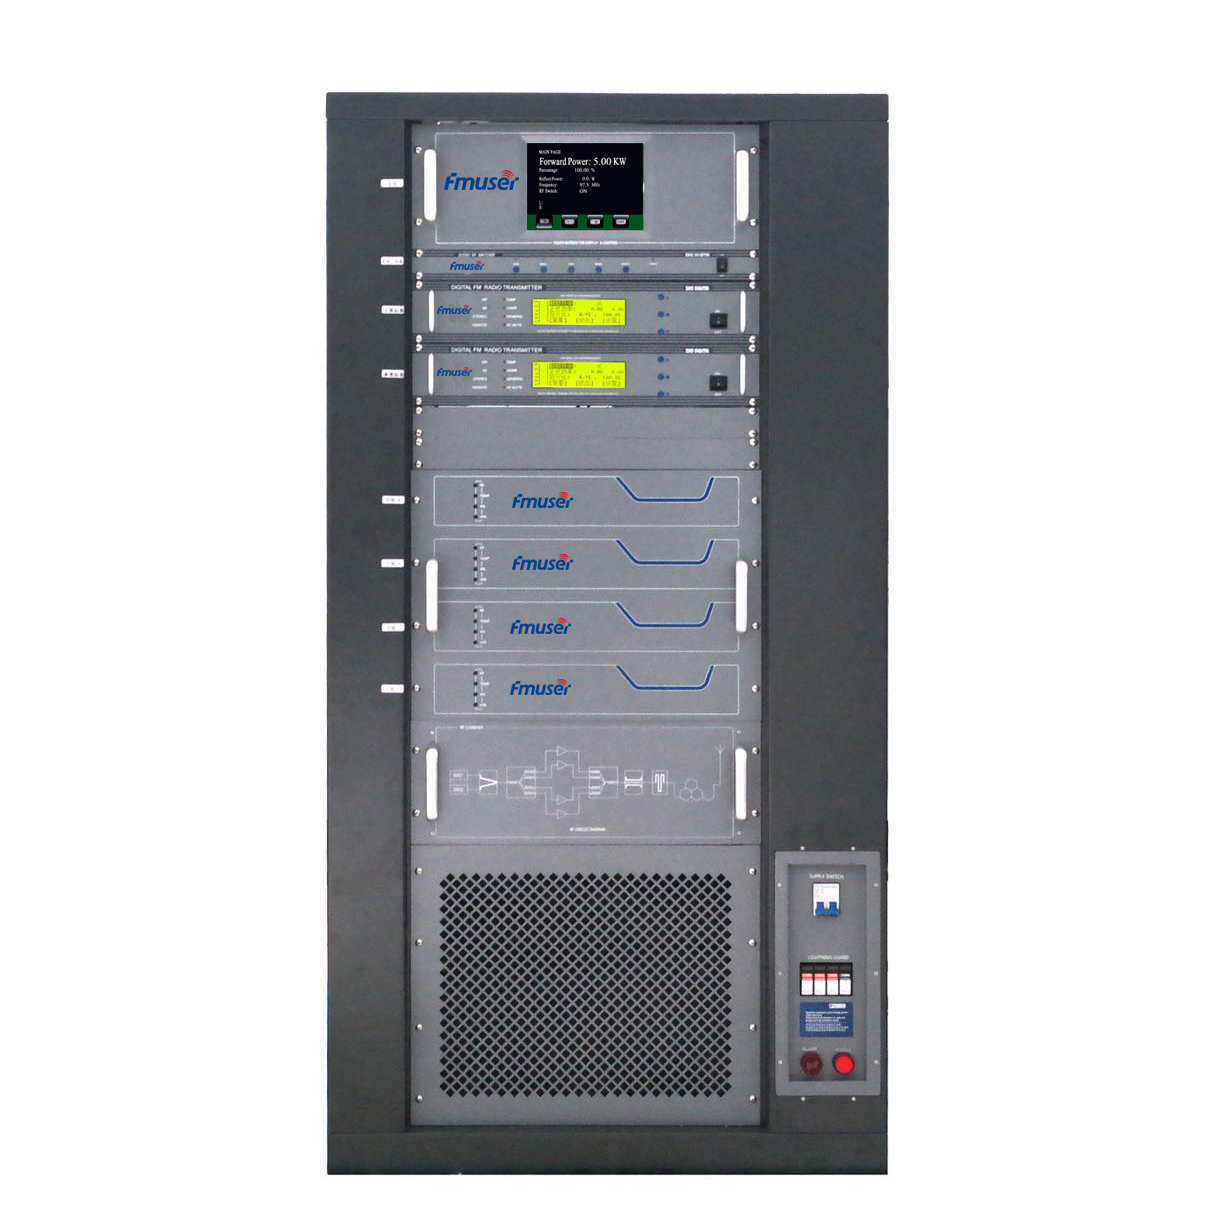 FMUSER FU618F-5kw 5000W 5KW Professional FM broadcast transmitter Rack Mount AES/EBU wiith AGC for City Radio Station